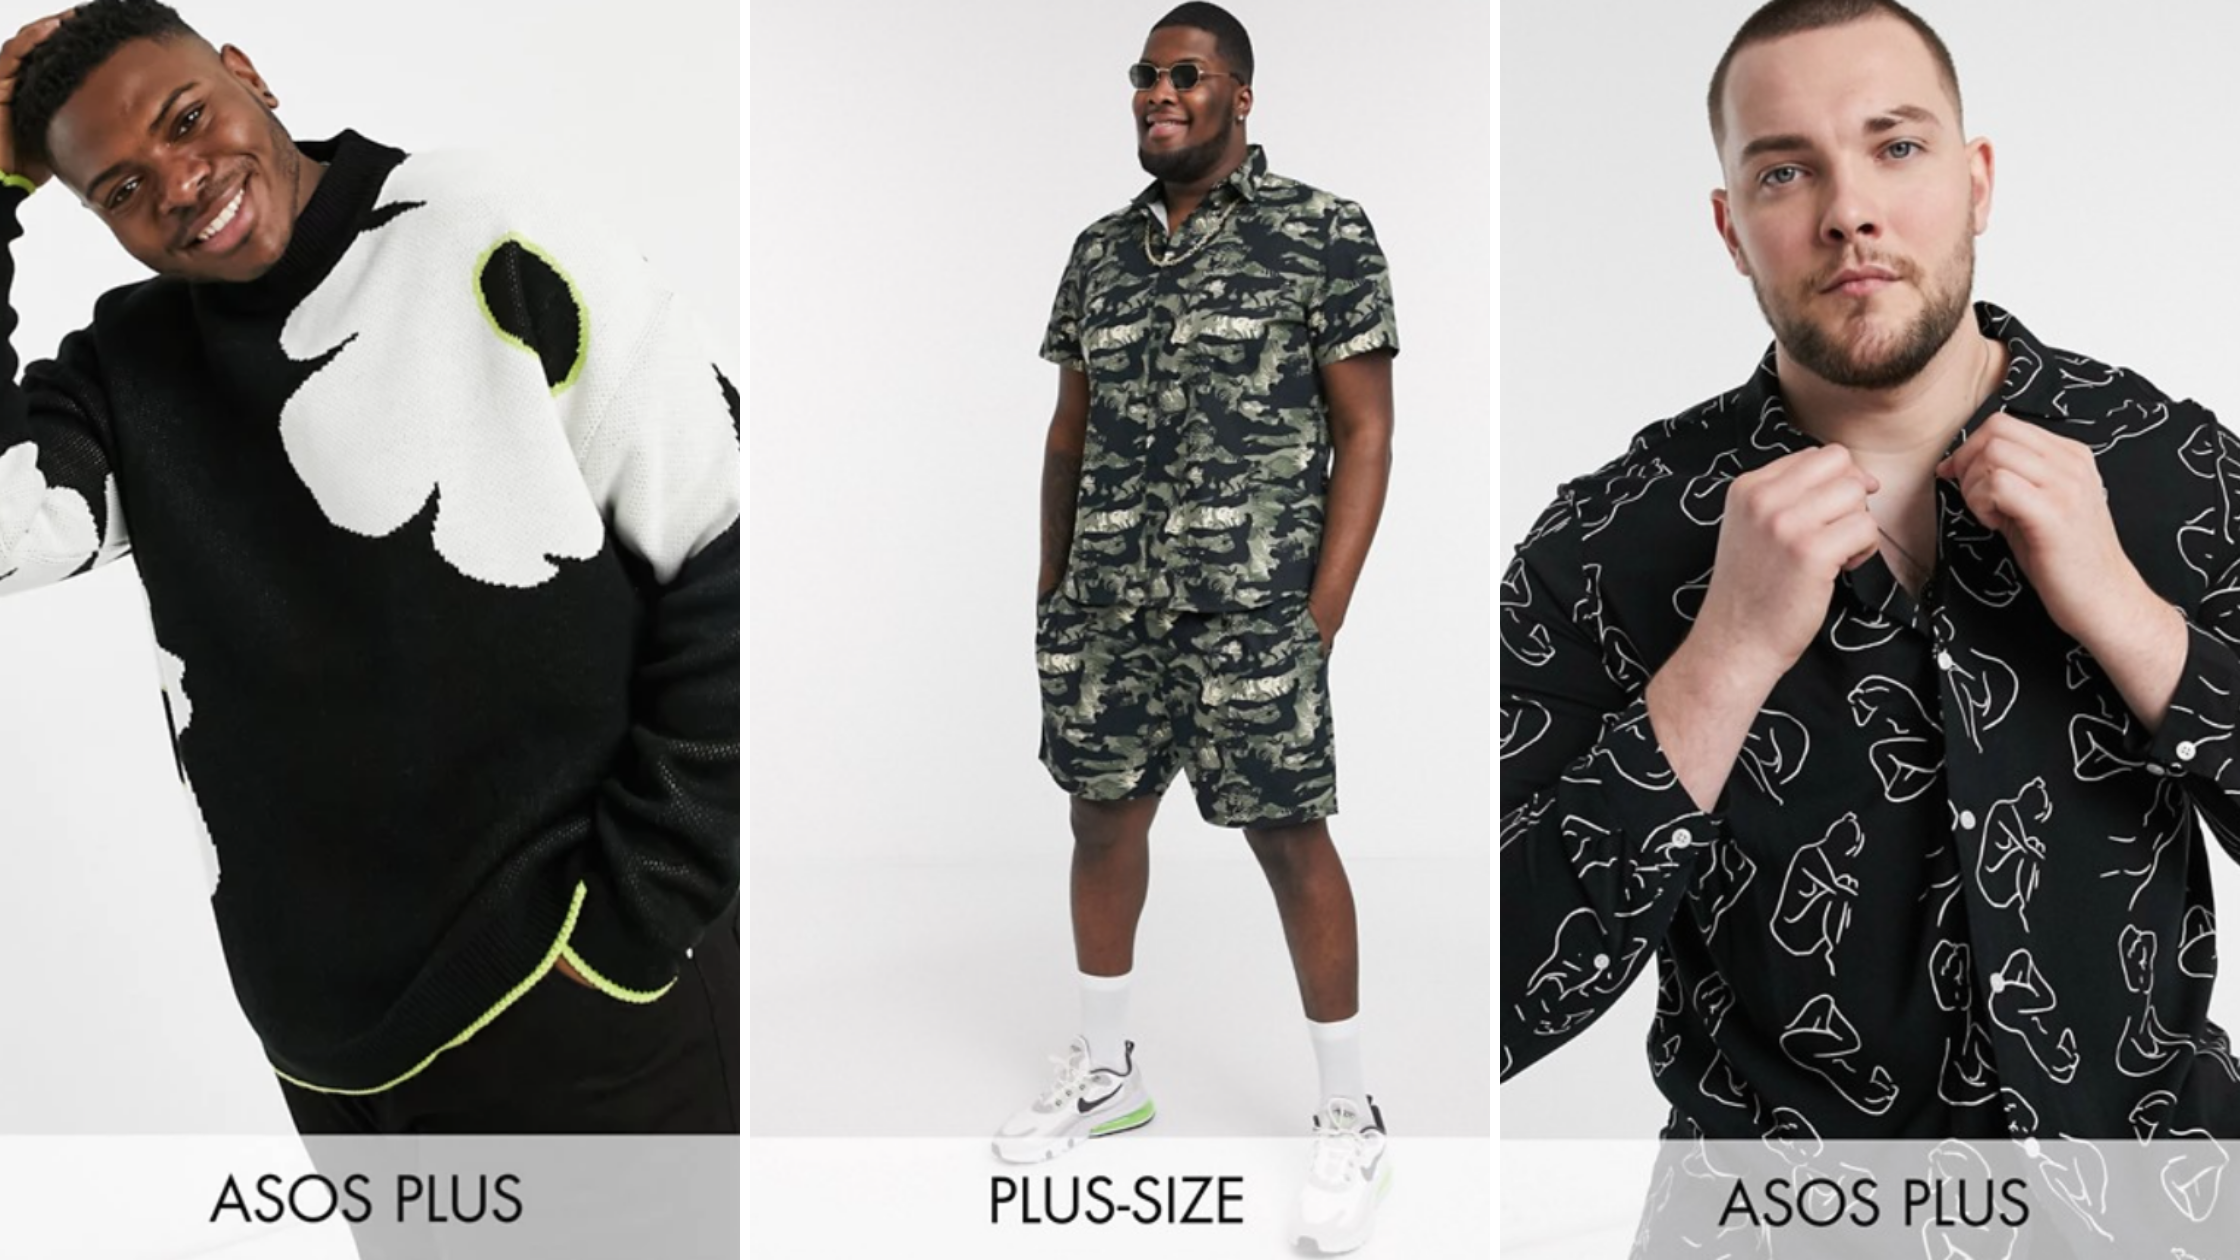 Masculine of center plus size clothing options